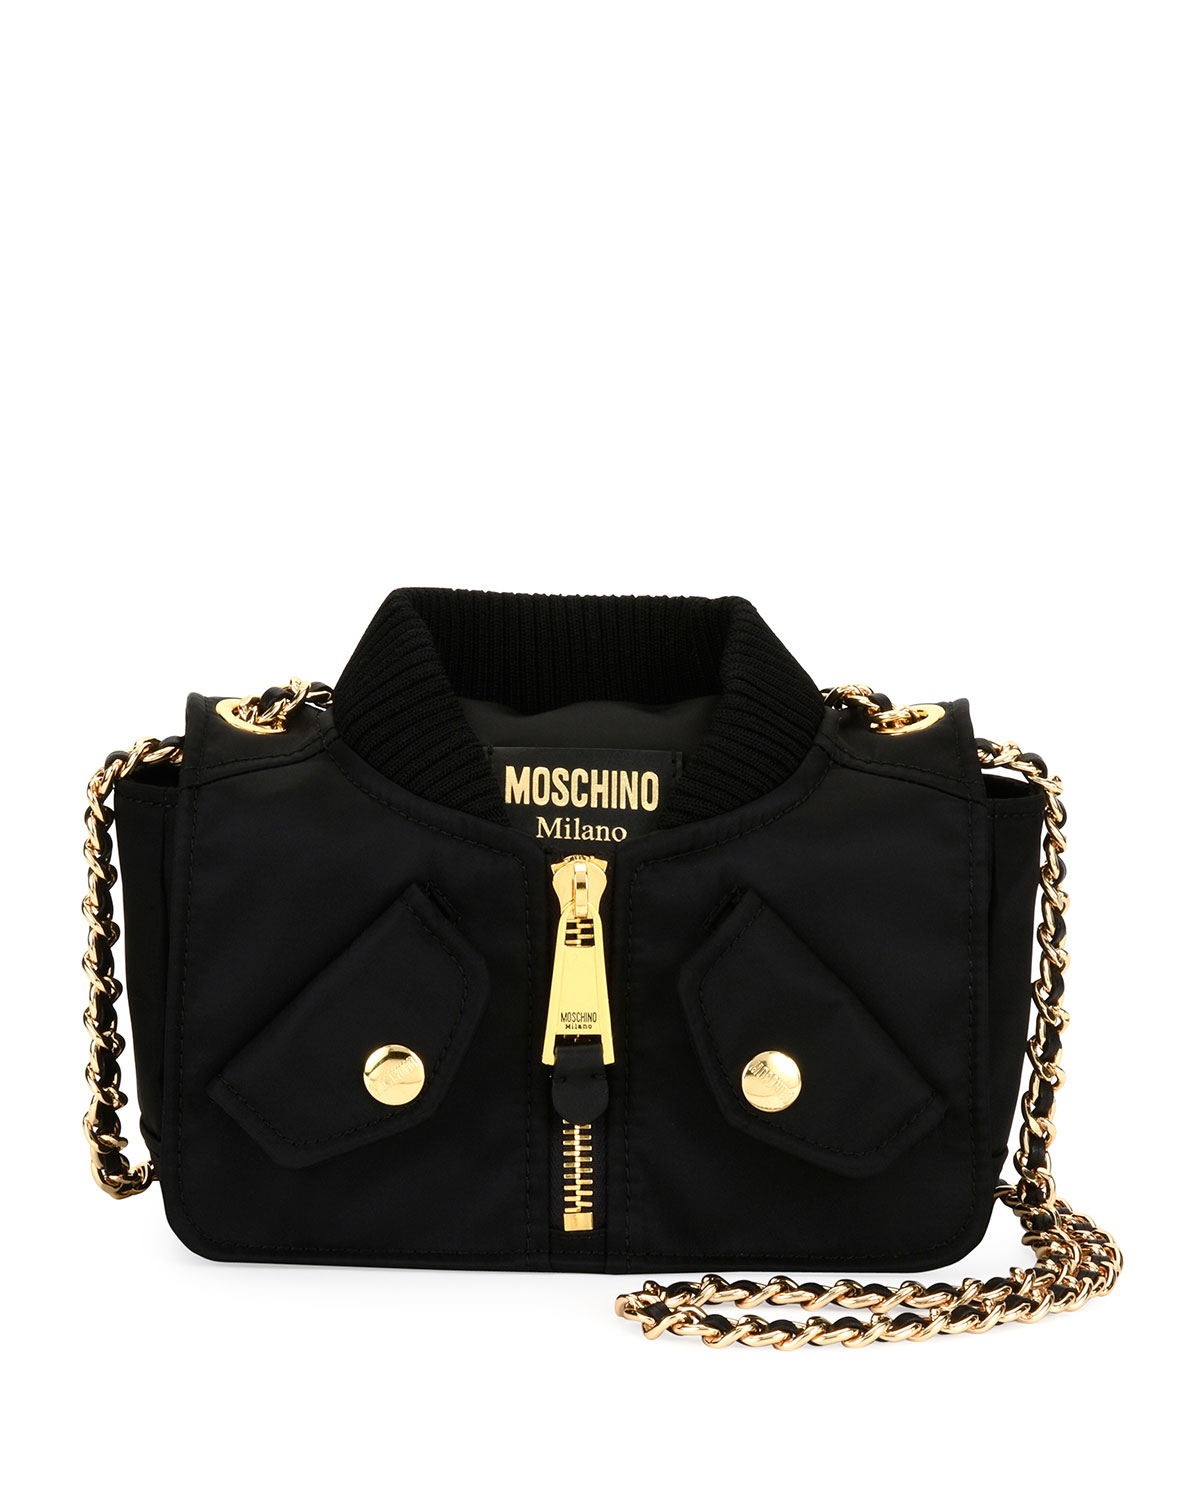 deef7d0e29 Moschino Biker Woven Chain Shoulder Bag, Black | Neiman Marcus